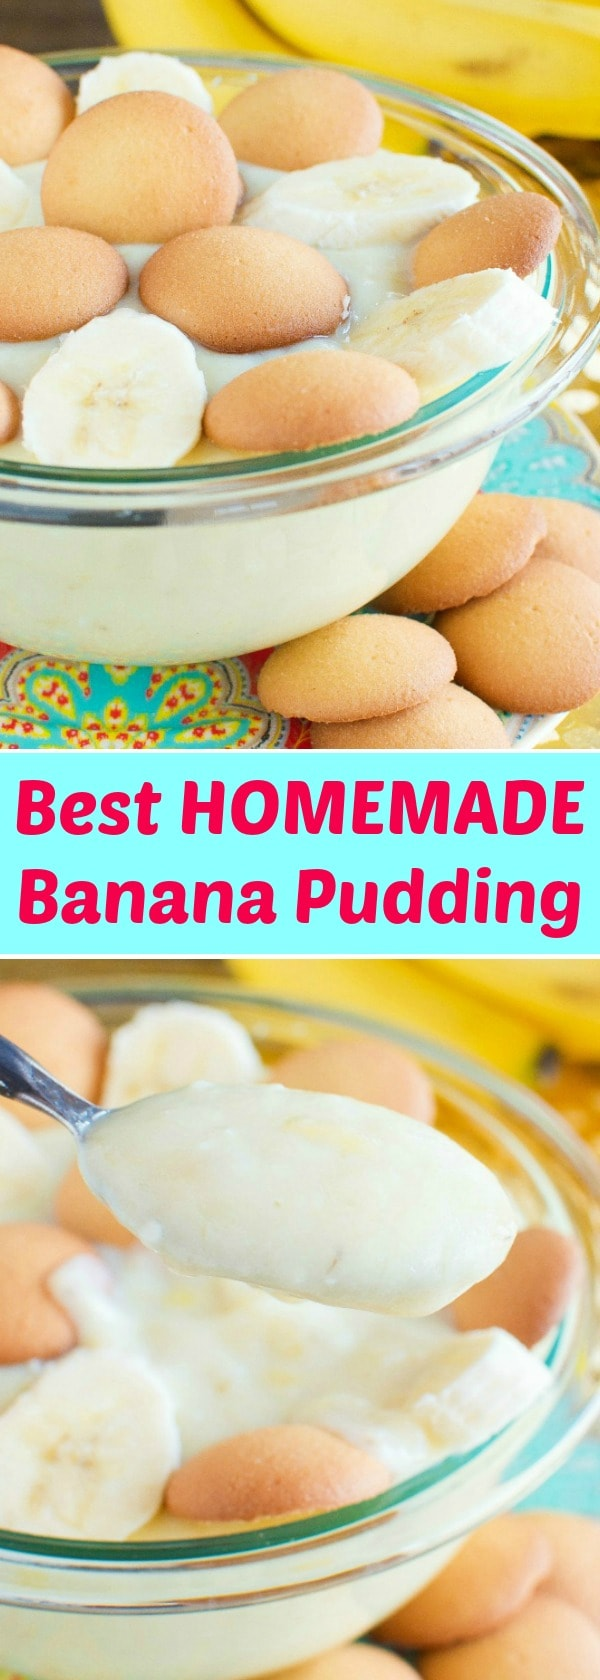 Forget the store bought box - this is the Best (easy) Homemade Banana Pudding Recipe!